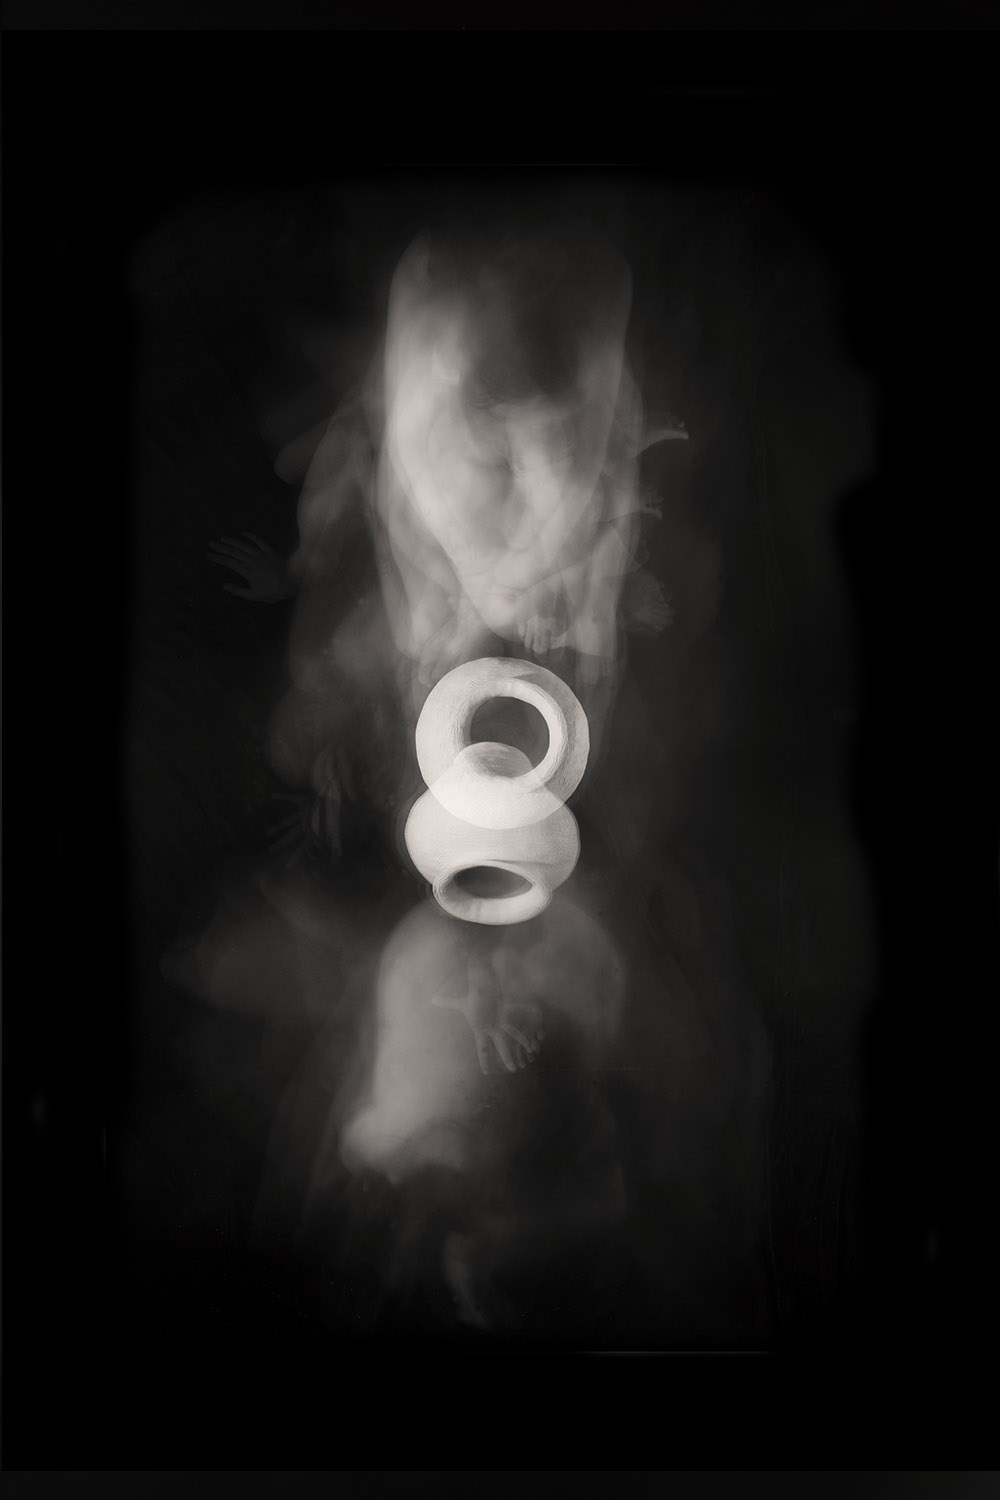 Carla Janse van Rensburg Untitled (10 minute exposure of Fire Vase Consecration Ritual) 2018 digital photograph archival ink on Hahnemuhle, 1of20 35.5 x 24.2 cm